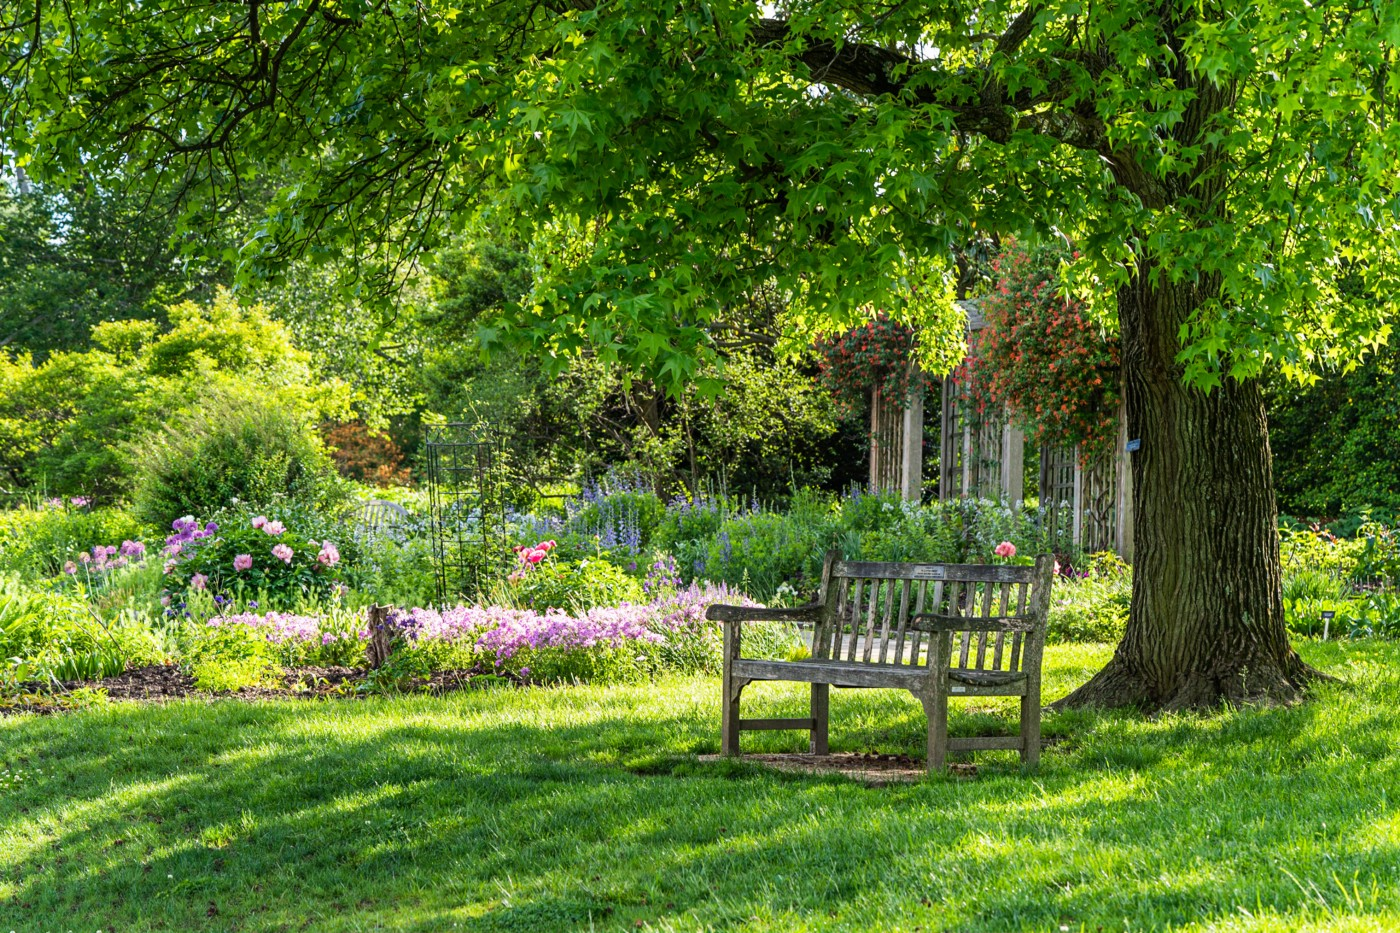 A wooden bench sits beneath a lush maple tree, with flowering gardens surrounding it.